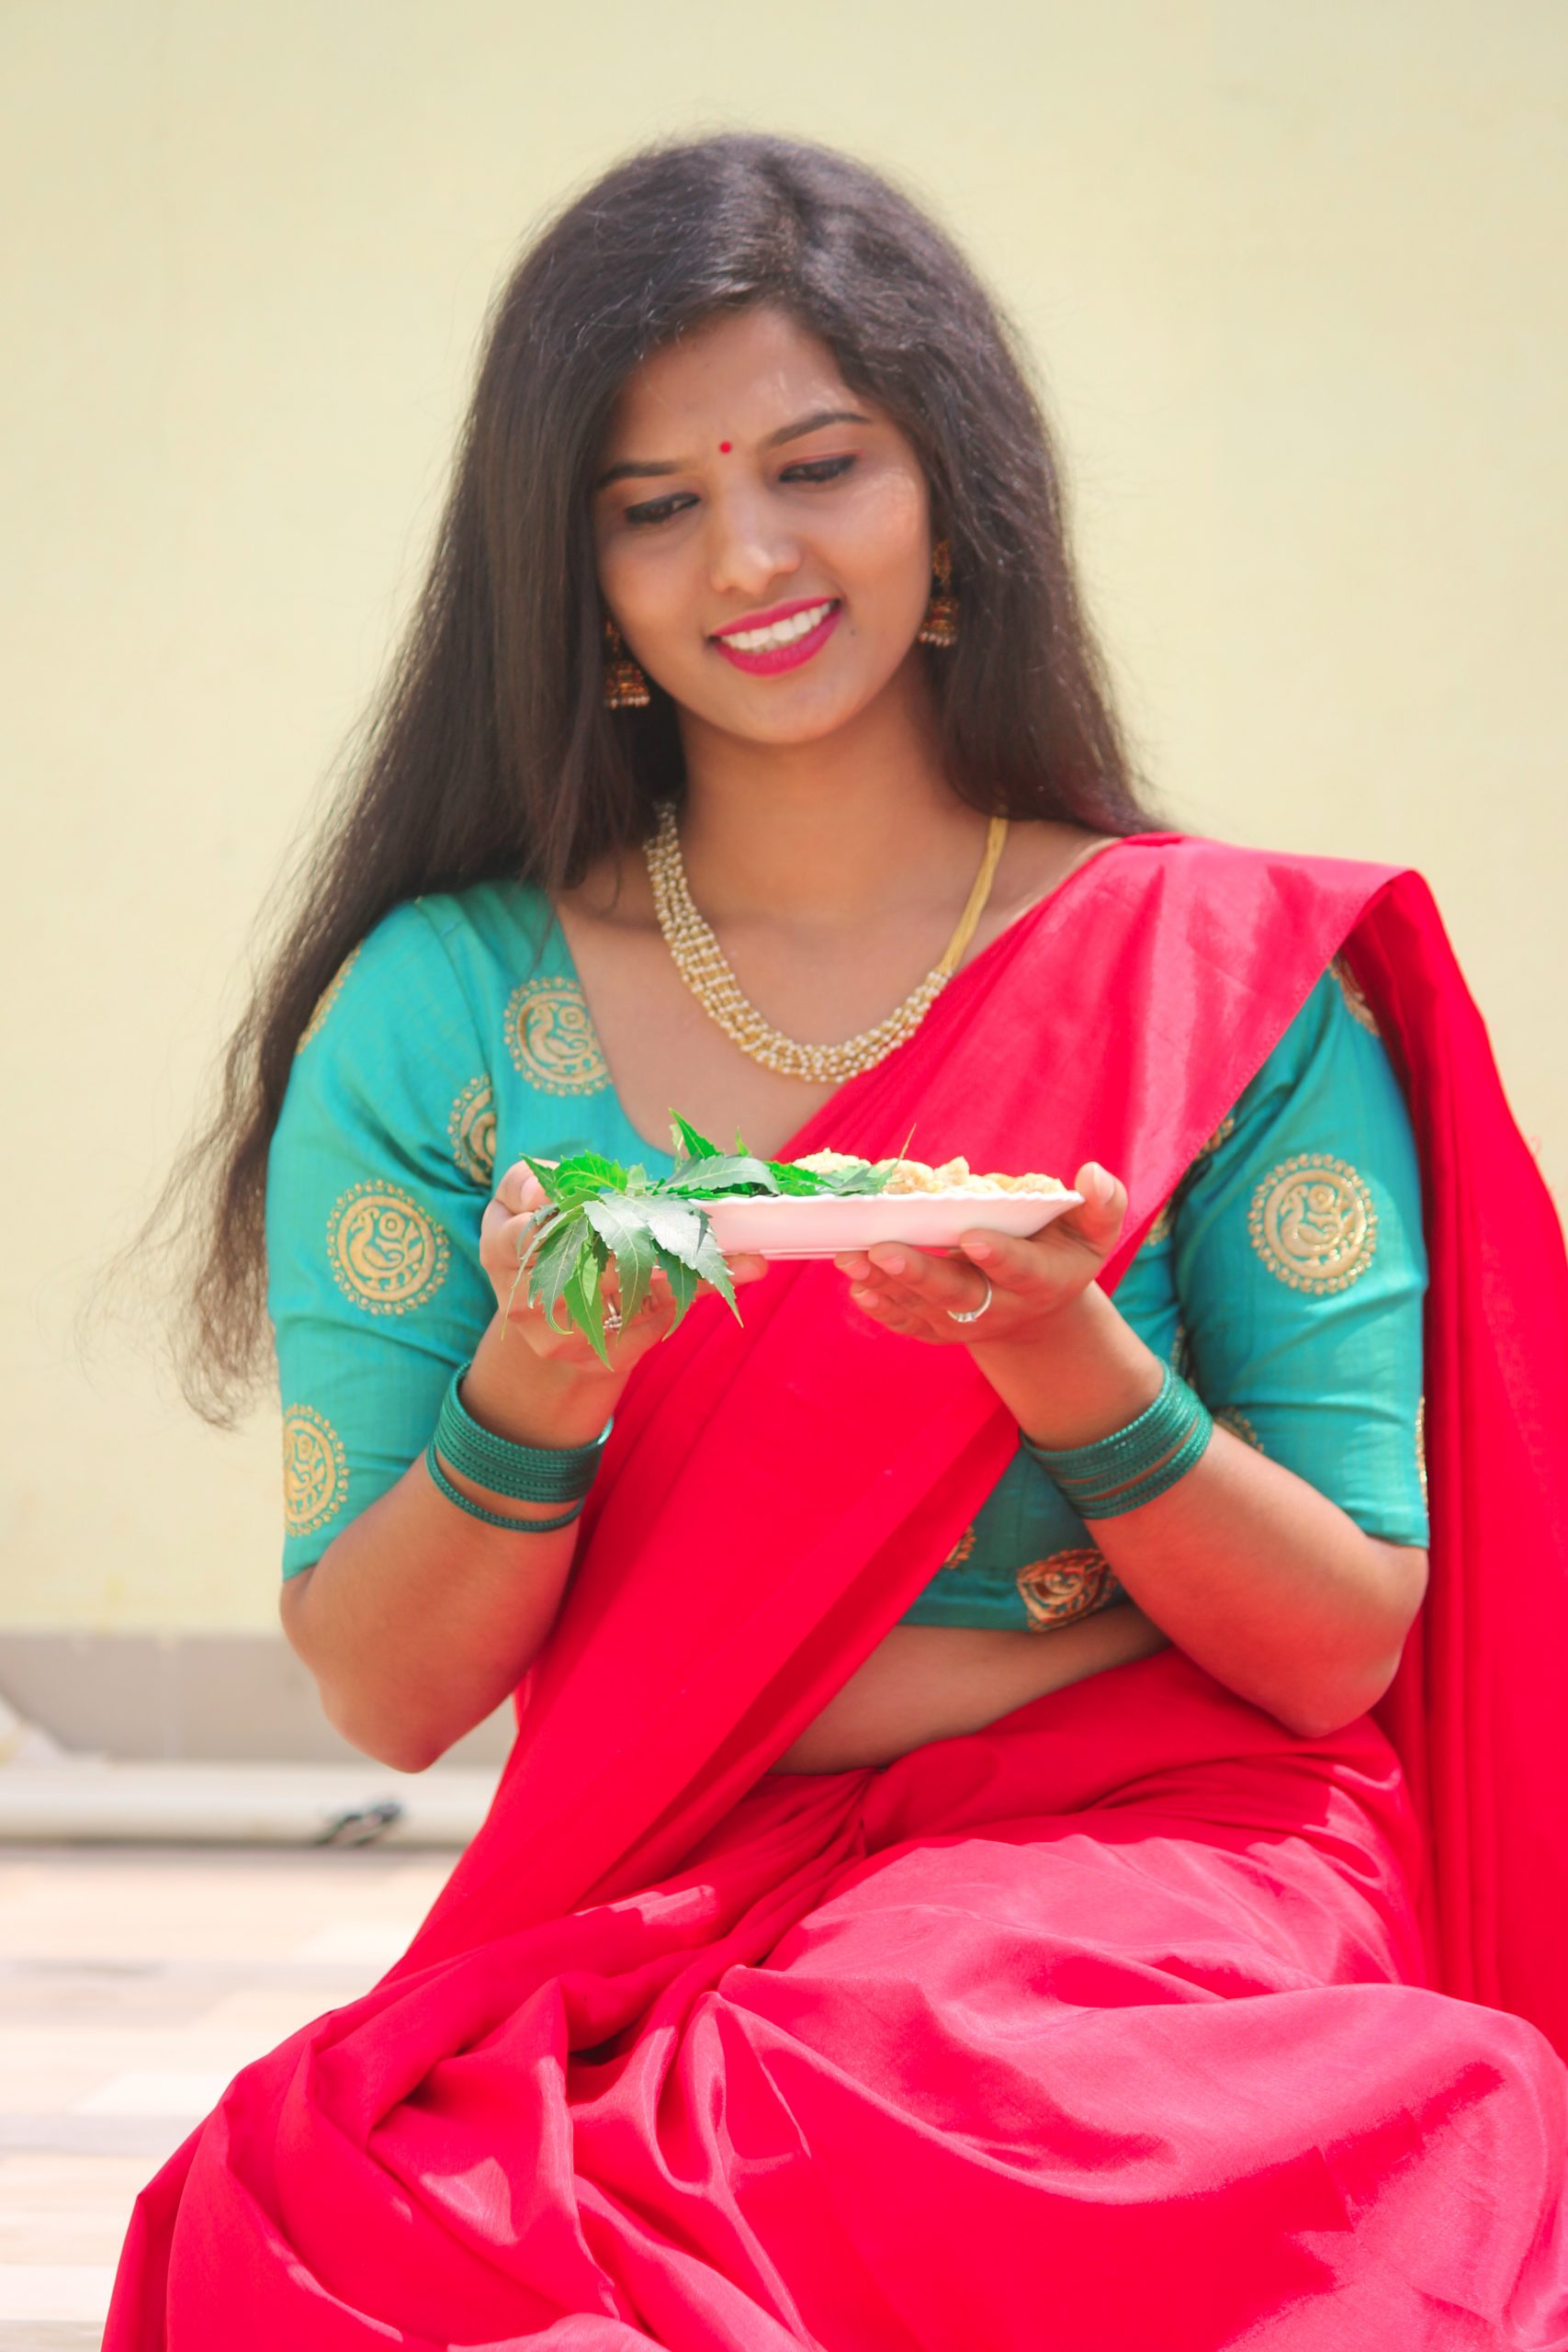 A woman celebrating Gudi padwa festival